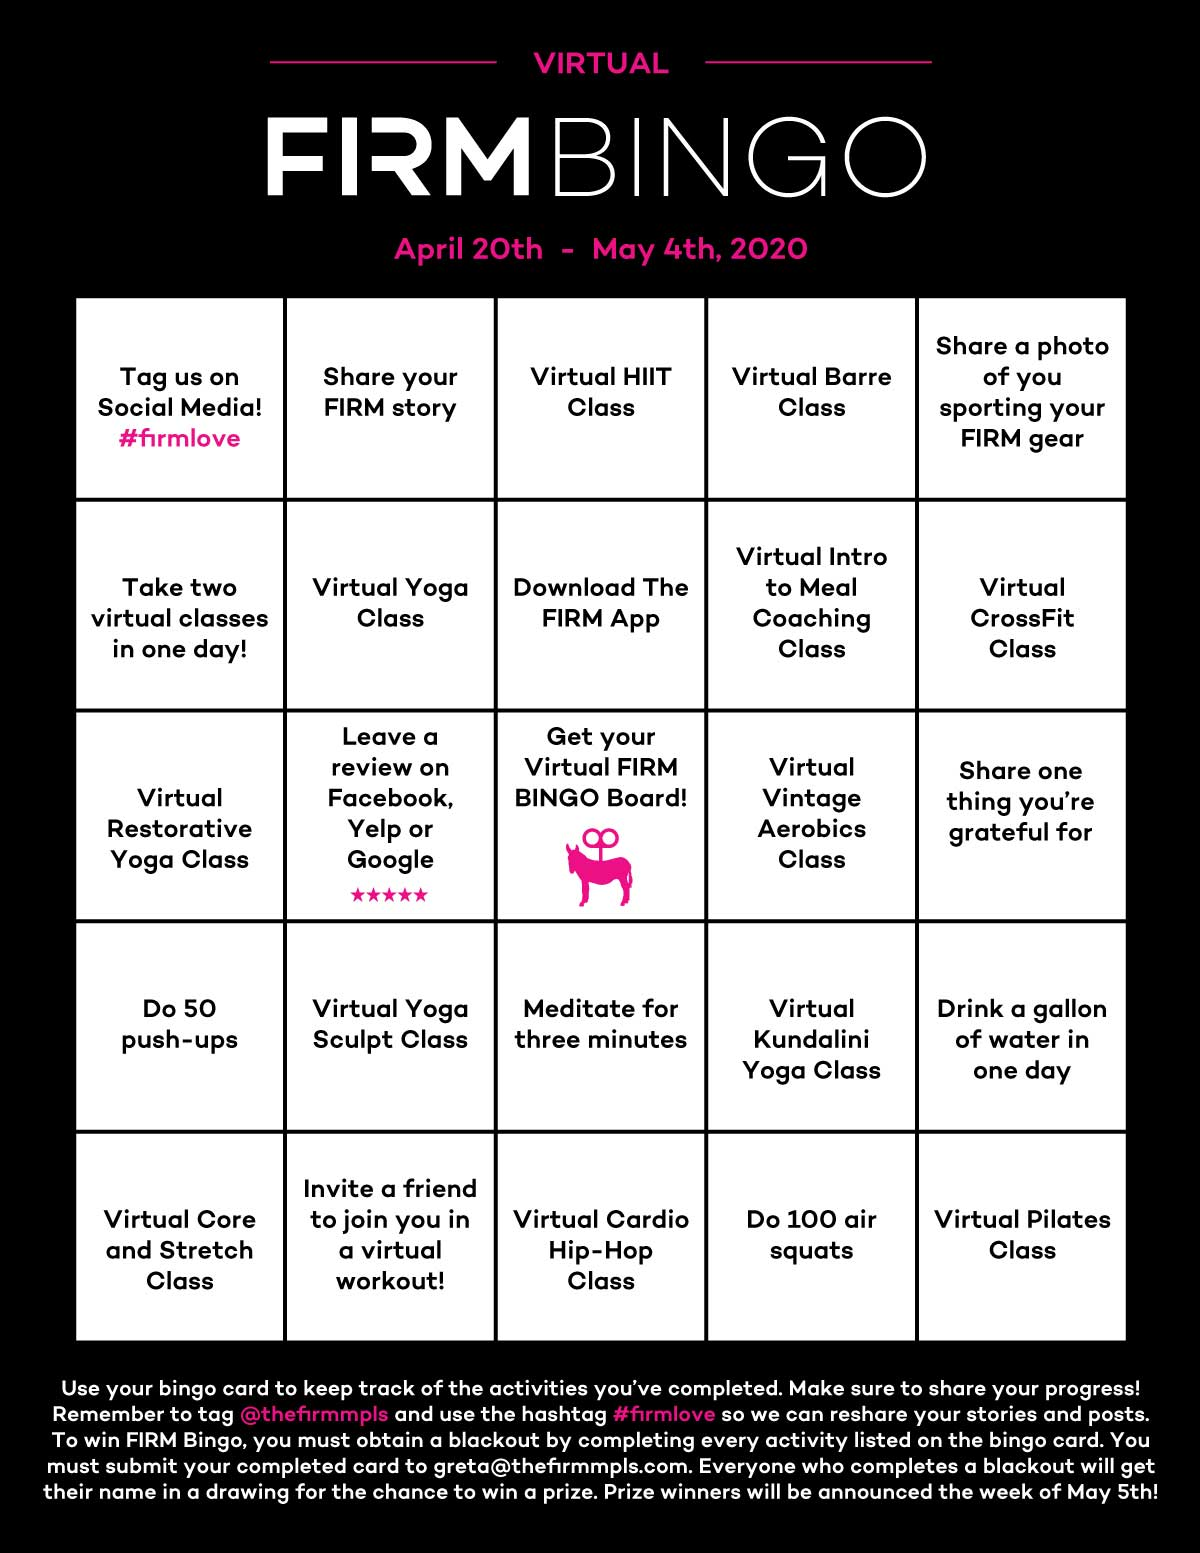 The FIRM Virtual Bingo Board